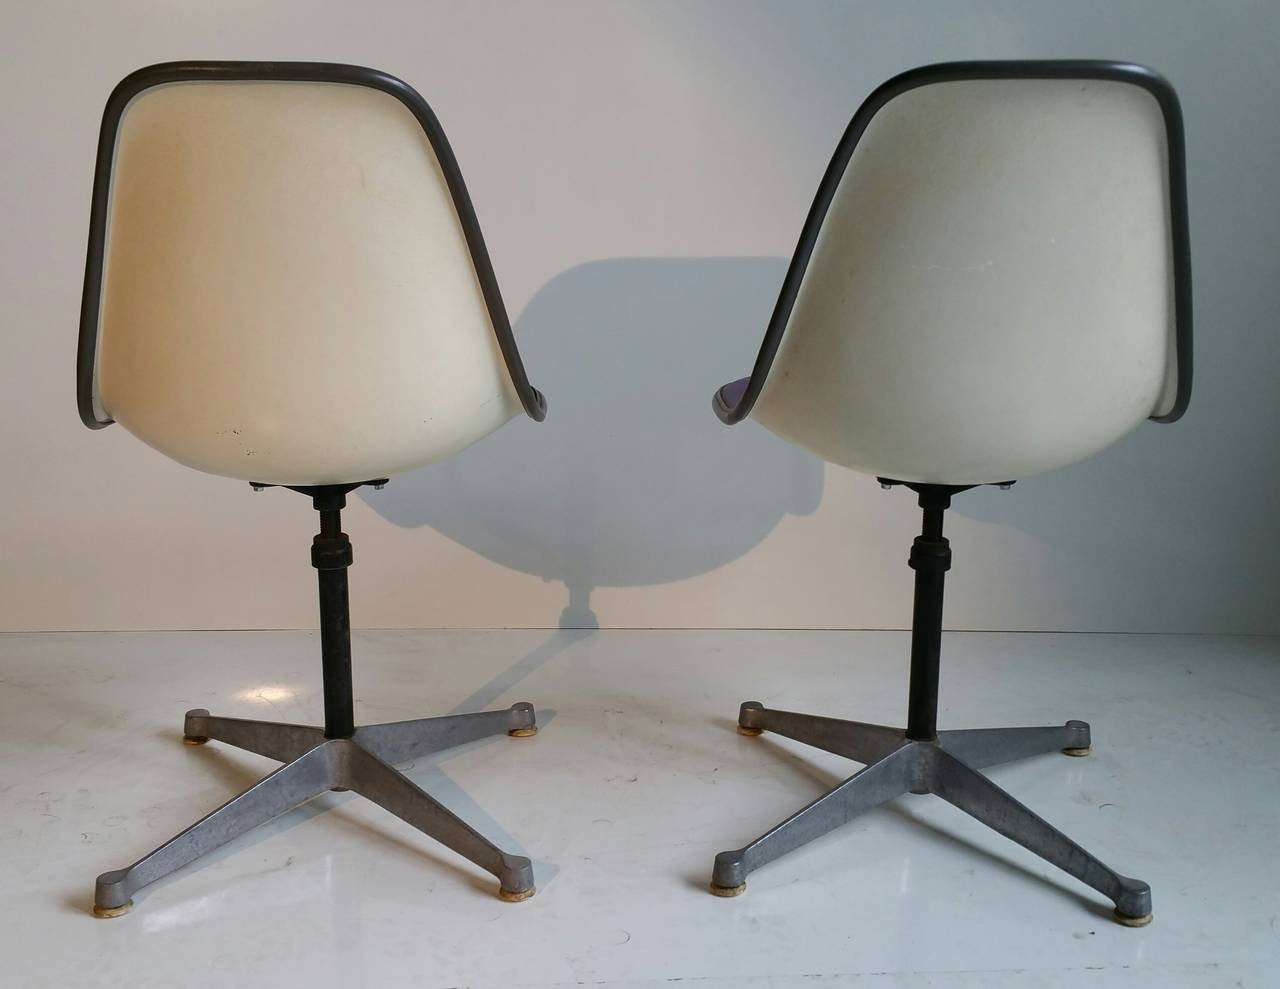 Pair of Charles and Ray Eames Adjustable Swivel Chairs 2